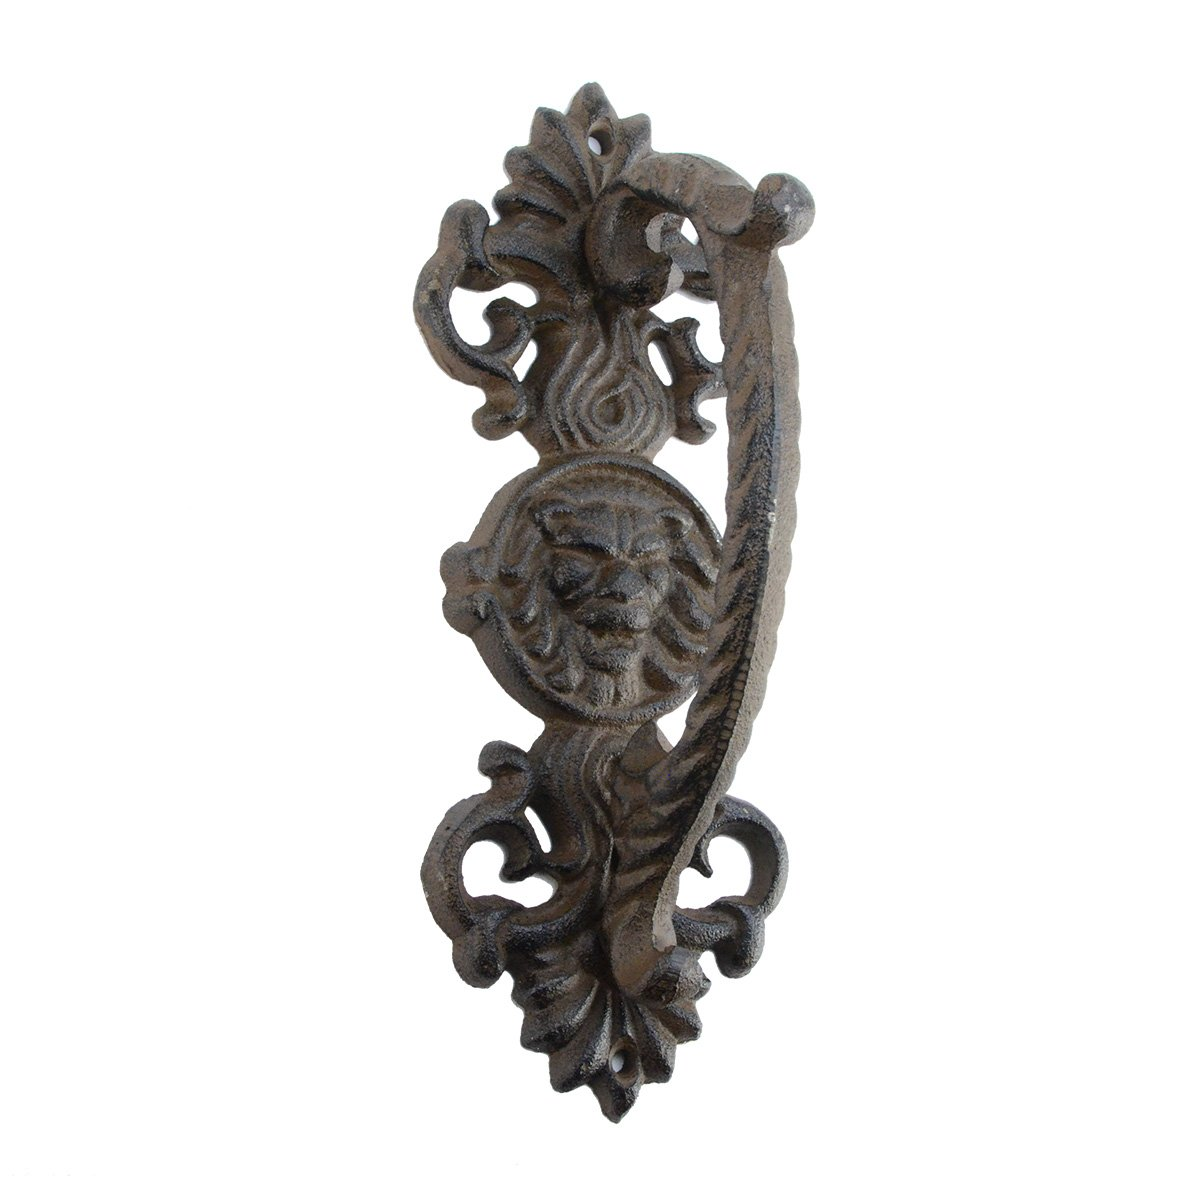 Ornate Cast Iron Lion Head Door Handle Gate Pull Grip by TG LLC